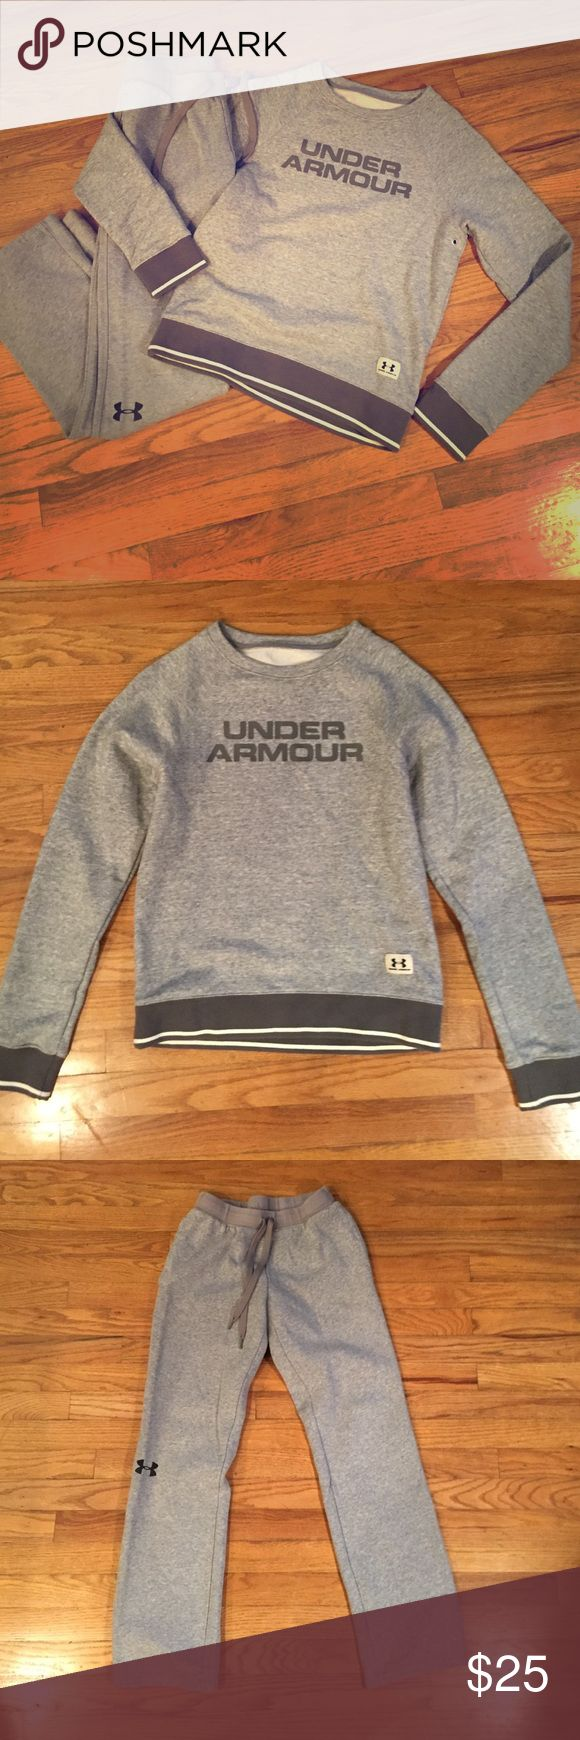 Under Armoir sweatshirt and pants UA crew sweatshirt and pants. Excellent preloved condition! Gray and a size small. Listing is for both pieces Under Armour Tops Sweatshirts & Hoodies